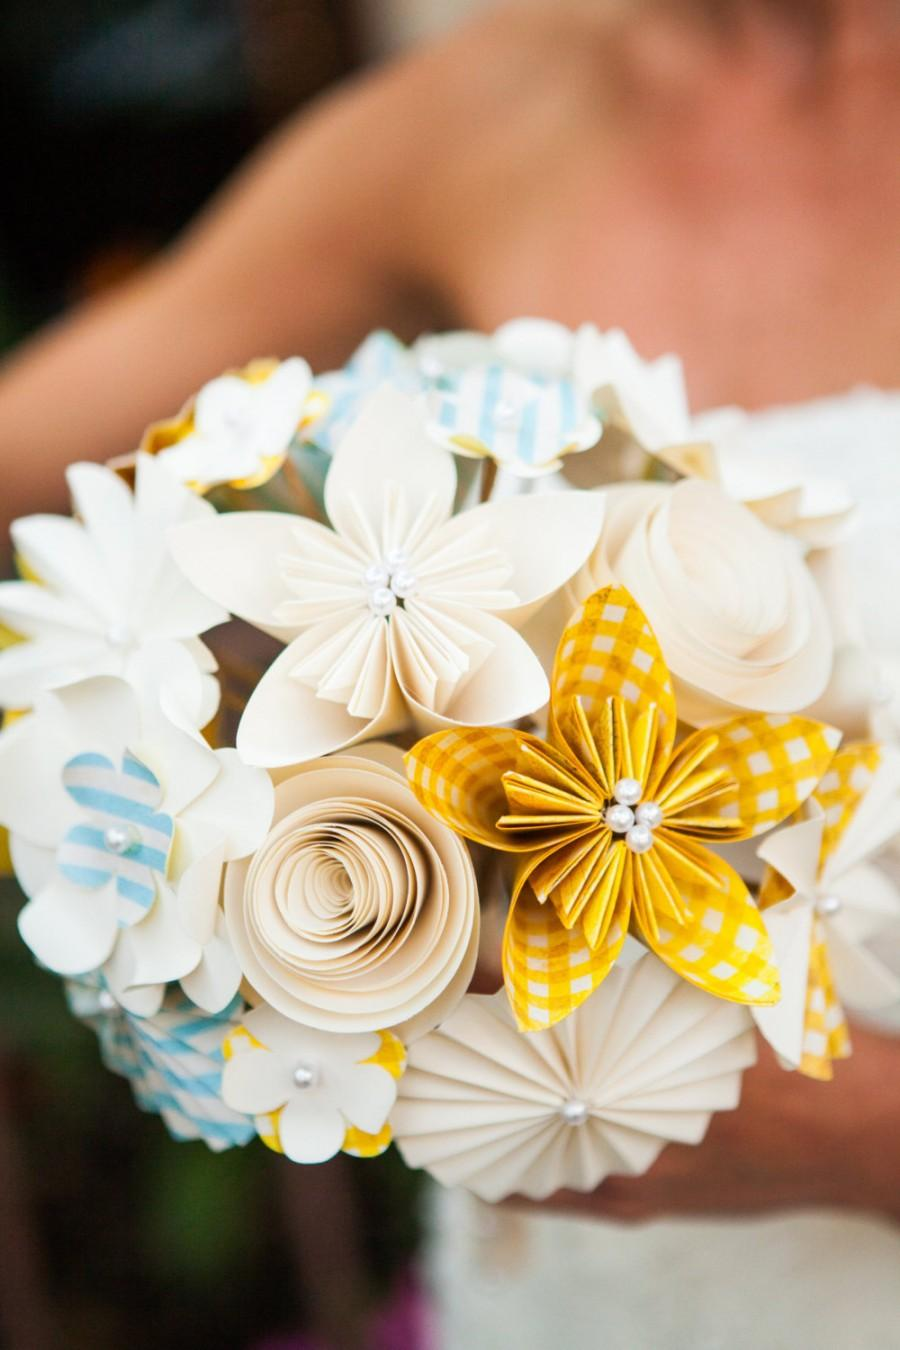 Свадьба - Bridal Bouquet - Paper Flowers - Kusudama Origami, Roses Daisies, Pinwheels - Made to Order